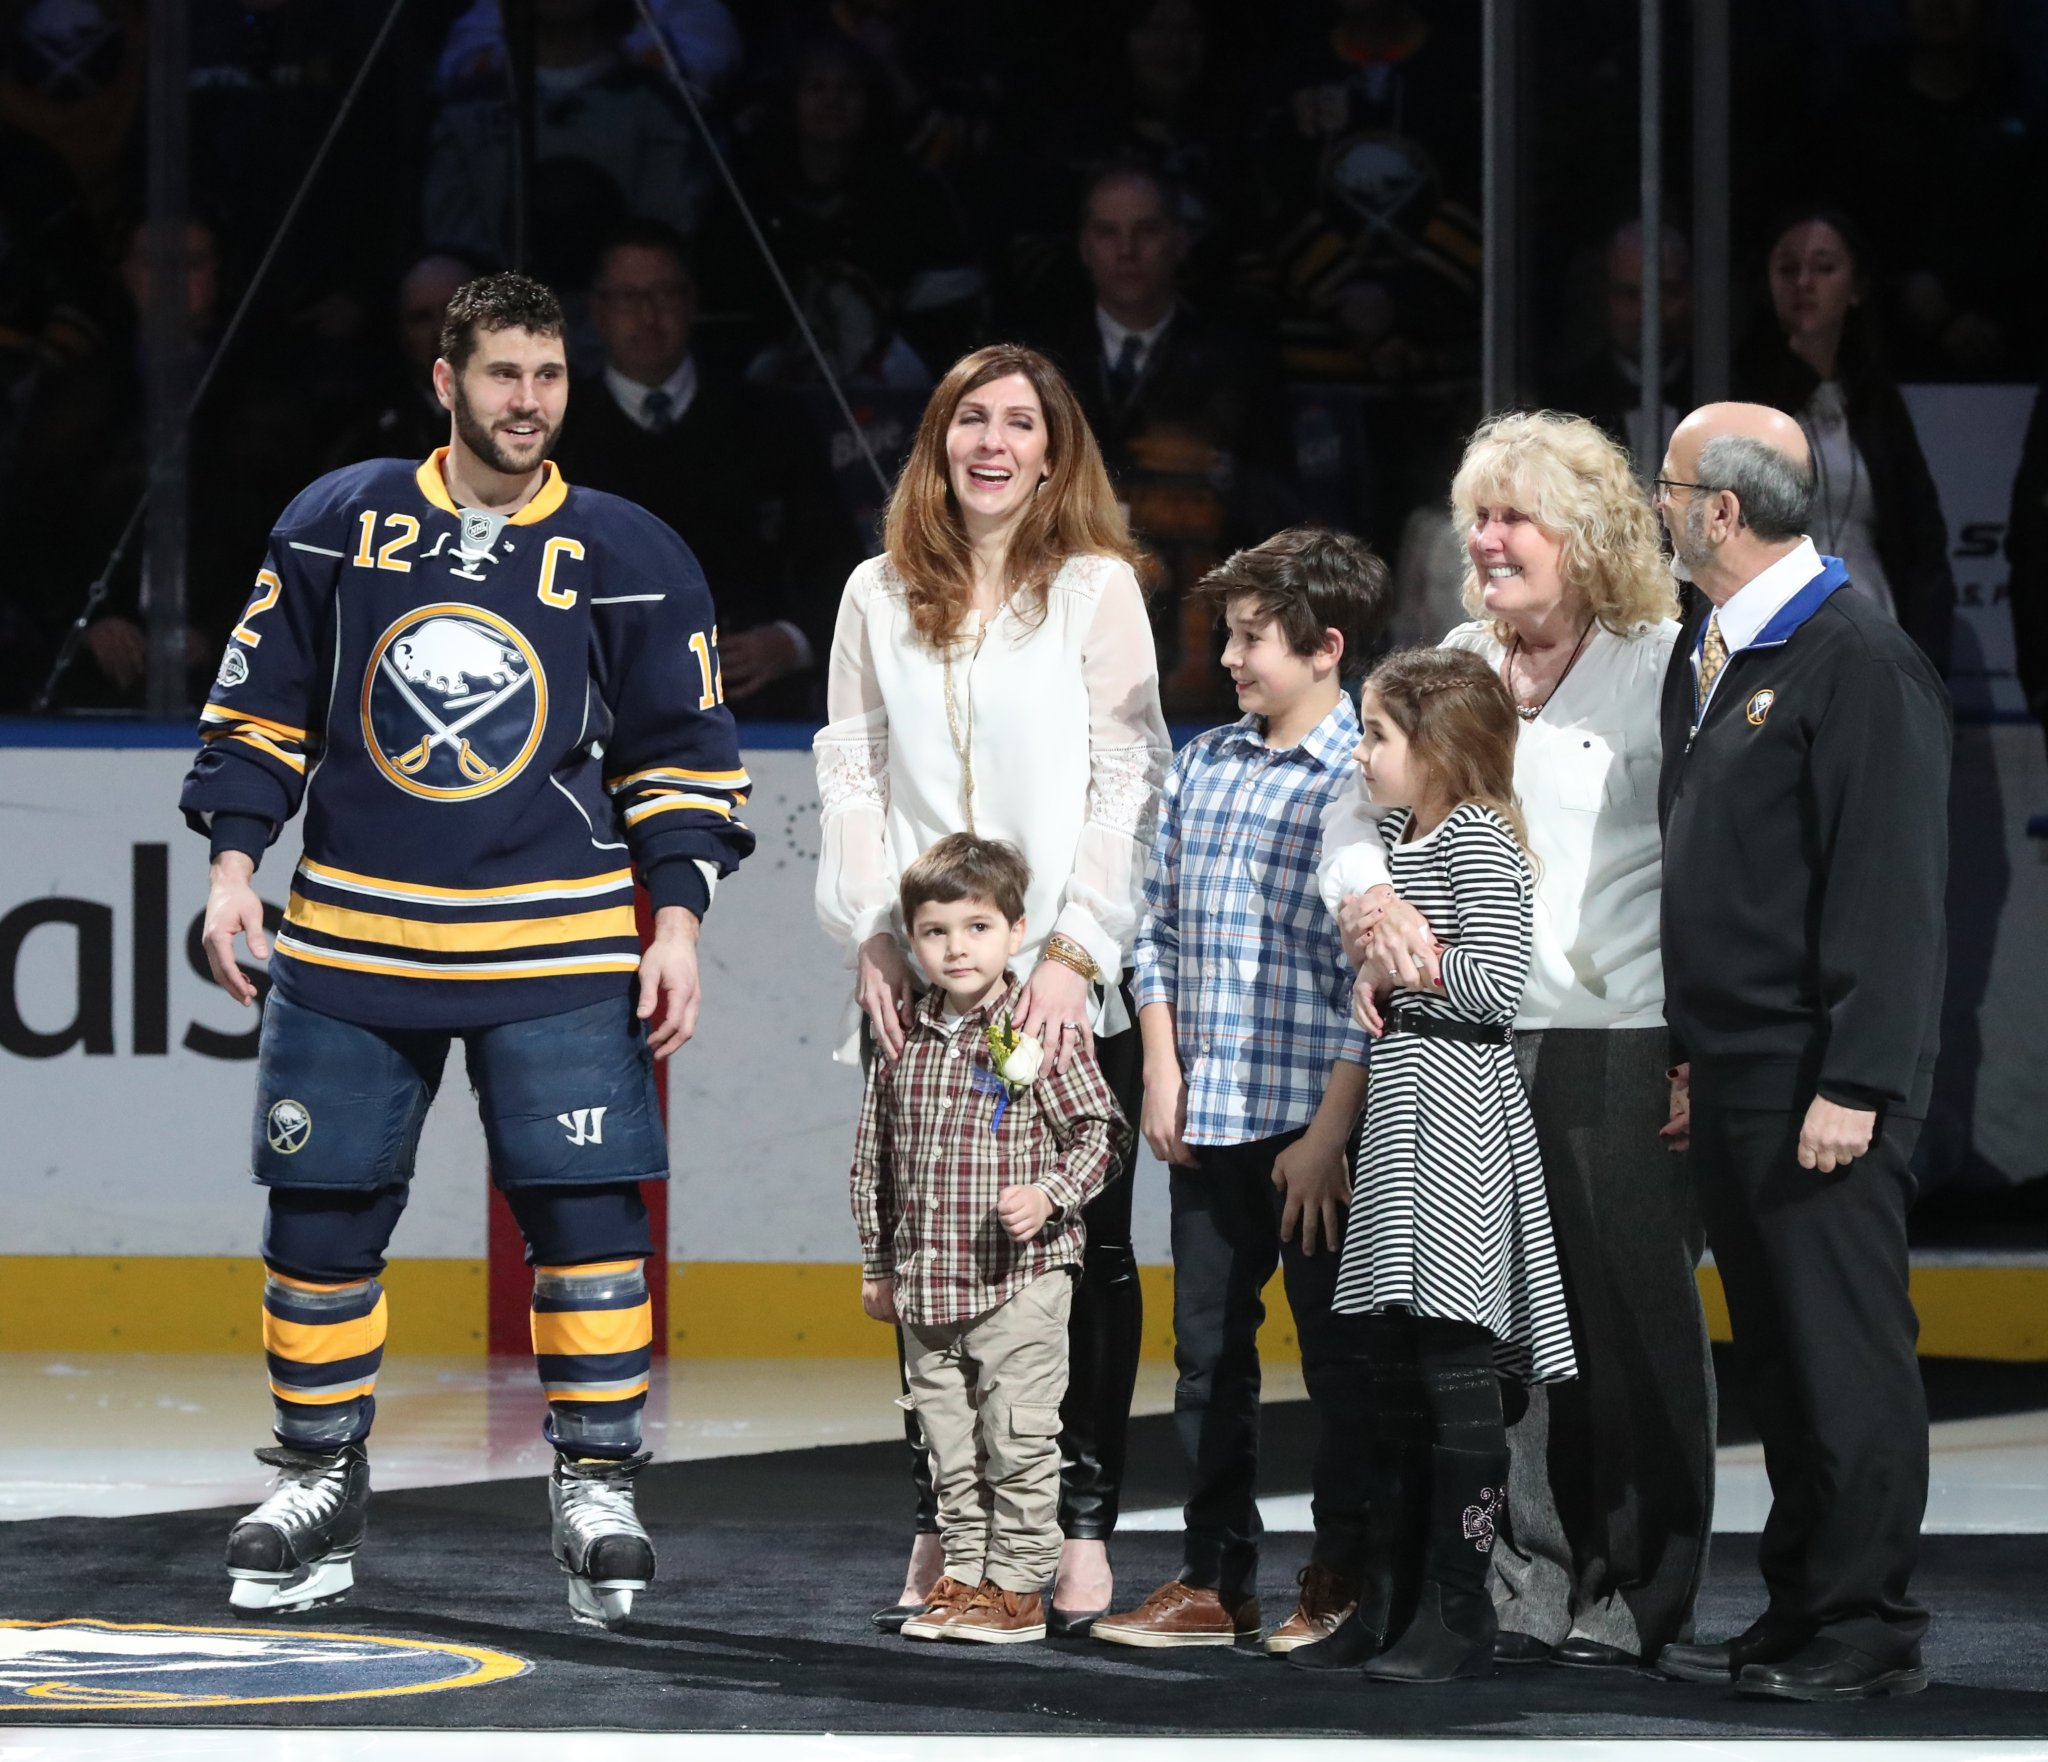 Brian Gionta celebrated his 1,000th NHL game with his wife, Harvest, children James, Adam and Leah, and his parents, Penny and Sam. (James P. McCoy/Buffalo News)